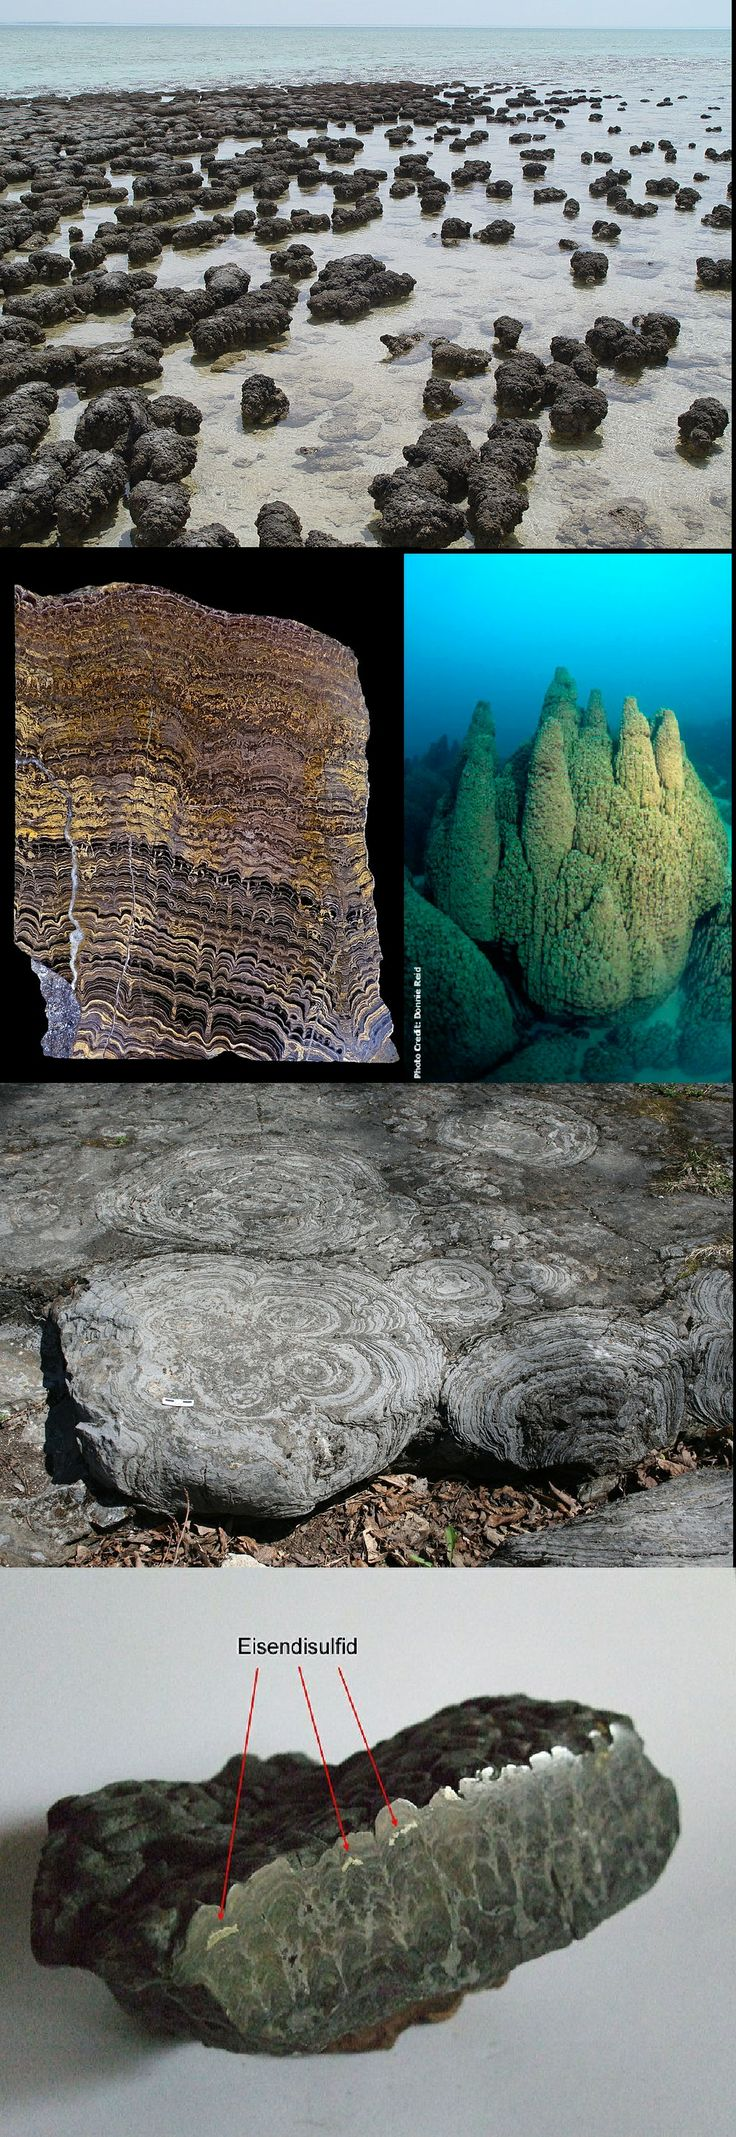 The oldest fossil records of life on earth, 3.5 billions of years old are stromatolites, formed by cyanobacteria found on the coast of australia